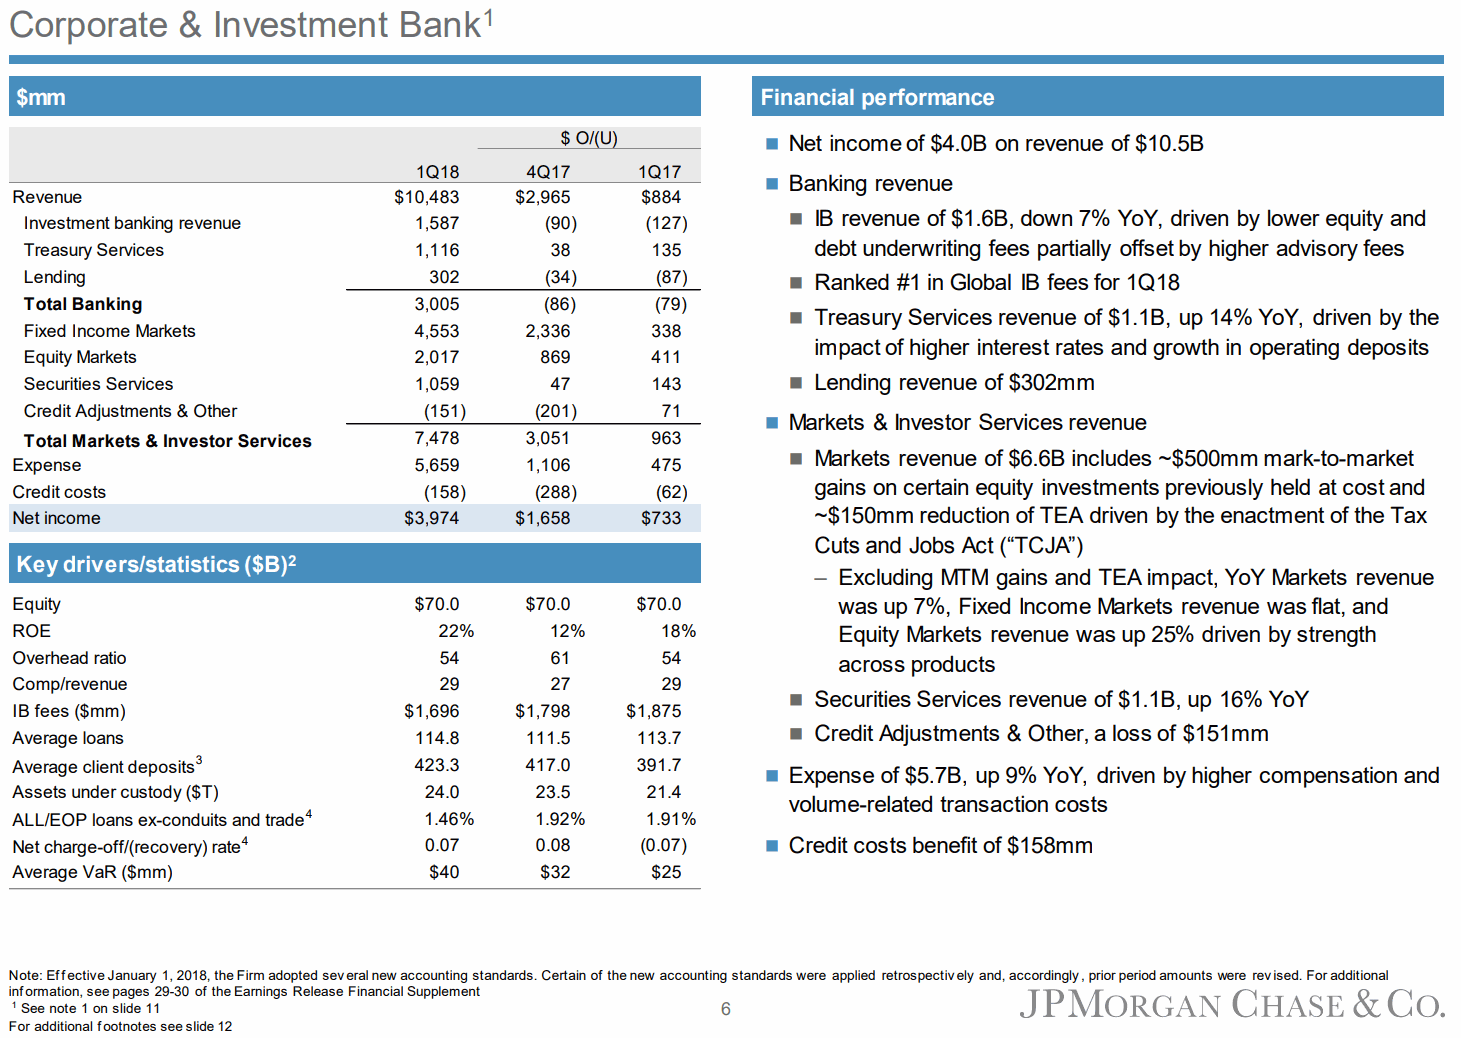 JPMorgan-1Q18-Corporate-and-Investment-Bank